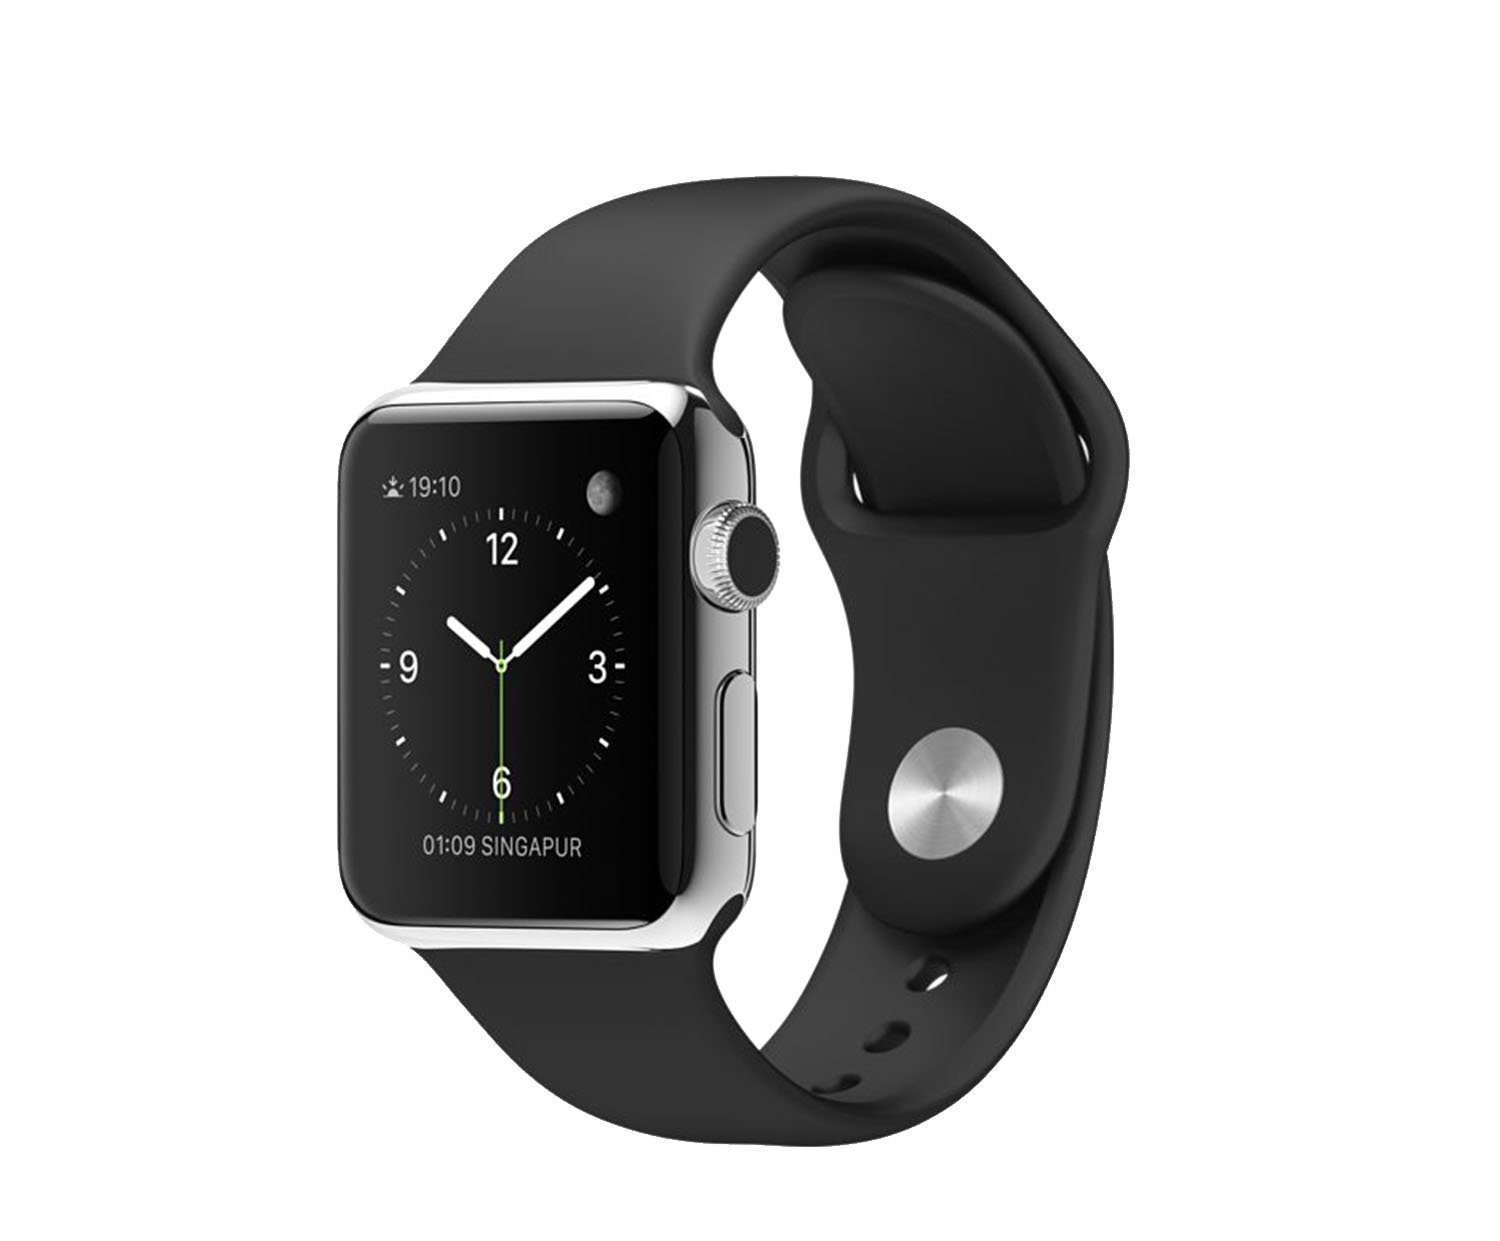 apple watch 2015 wi fi 38 mm edelstahlgeh use space. Black Bedroom Furniture Sets. Home Design Ideas